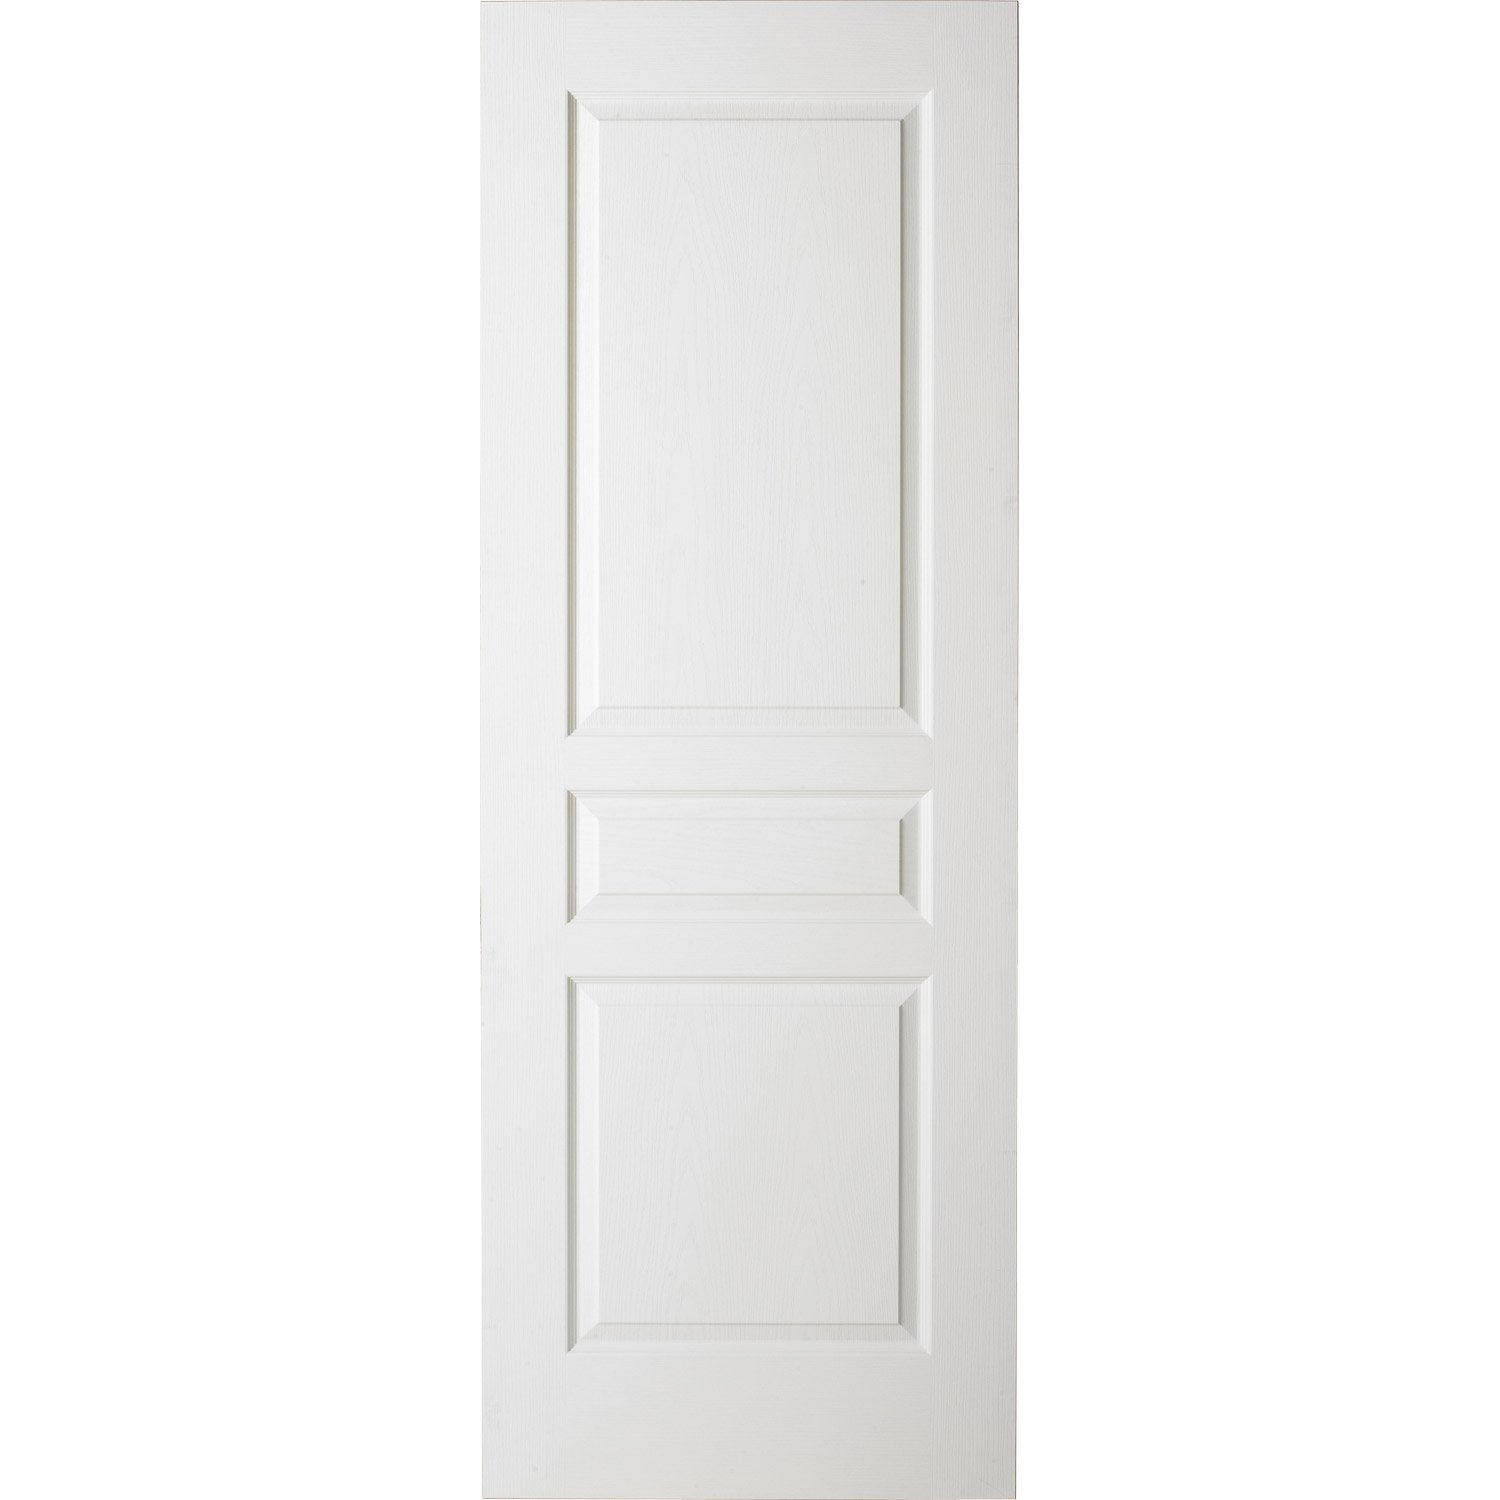 Porte coulissante postform e x cm leroy merlin for Porte interieur point p